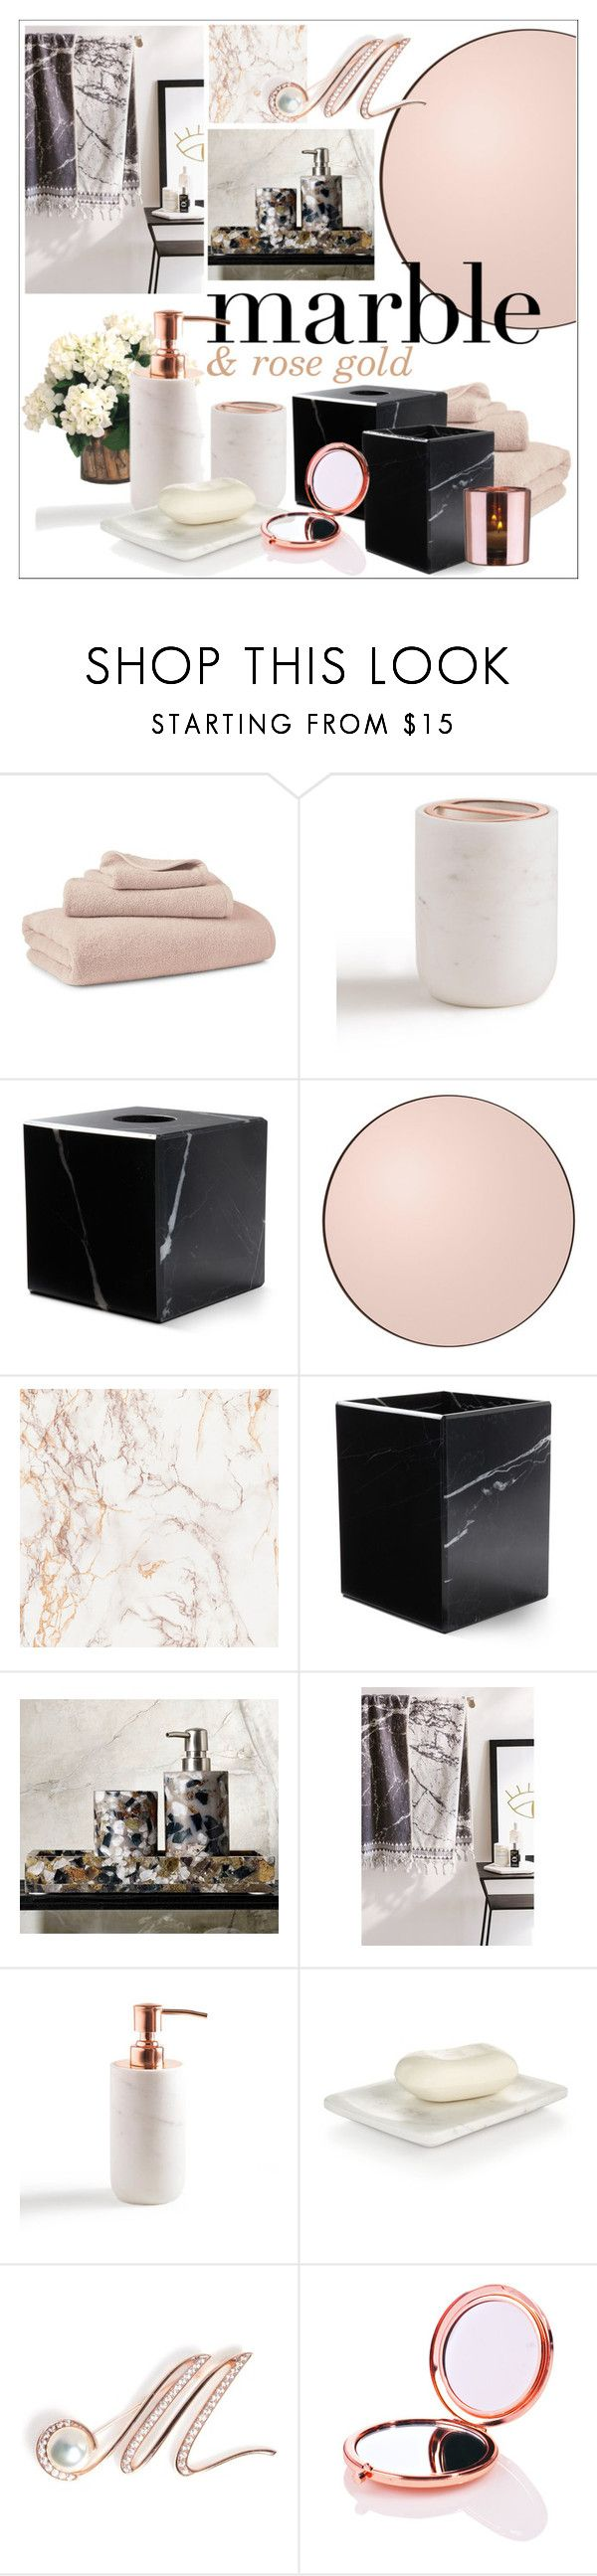 Marble Rose Gold In The Bathroom By Szaboesz Liked On Polyvore Featuring